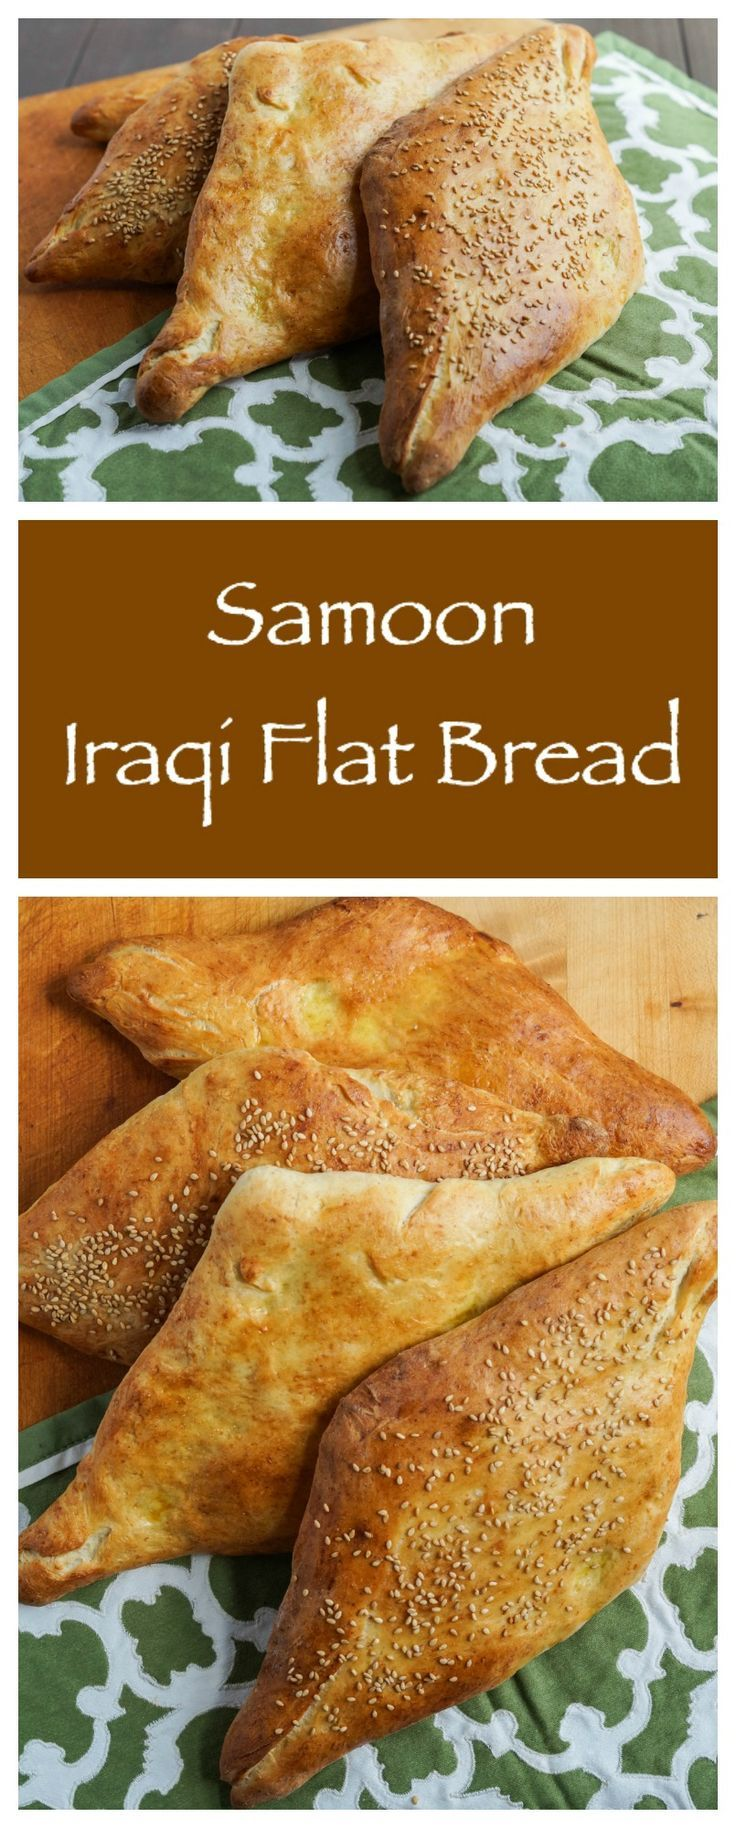 Samoon: Iraqi Flat Bread | Multicultural Kid Blogs